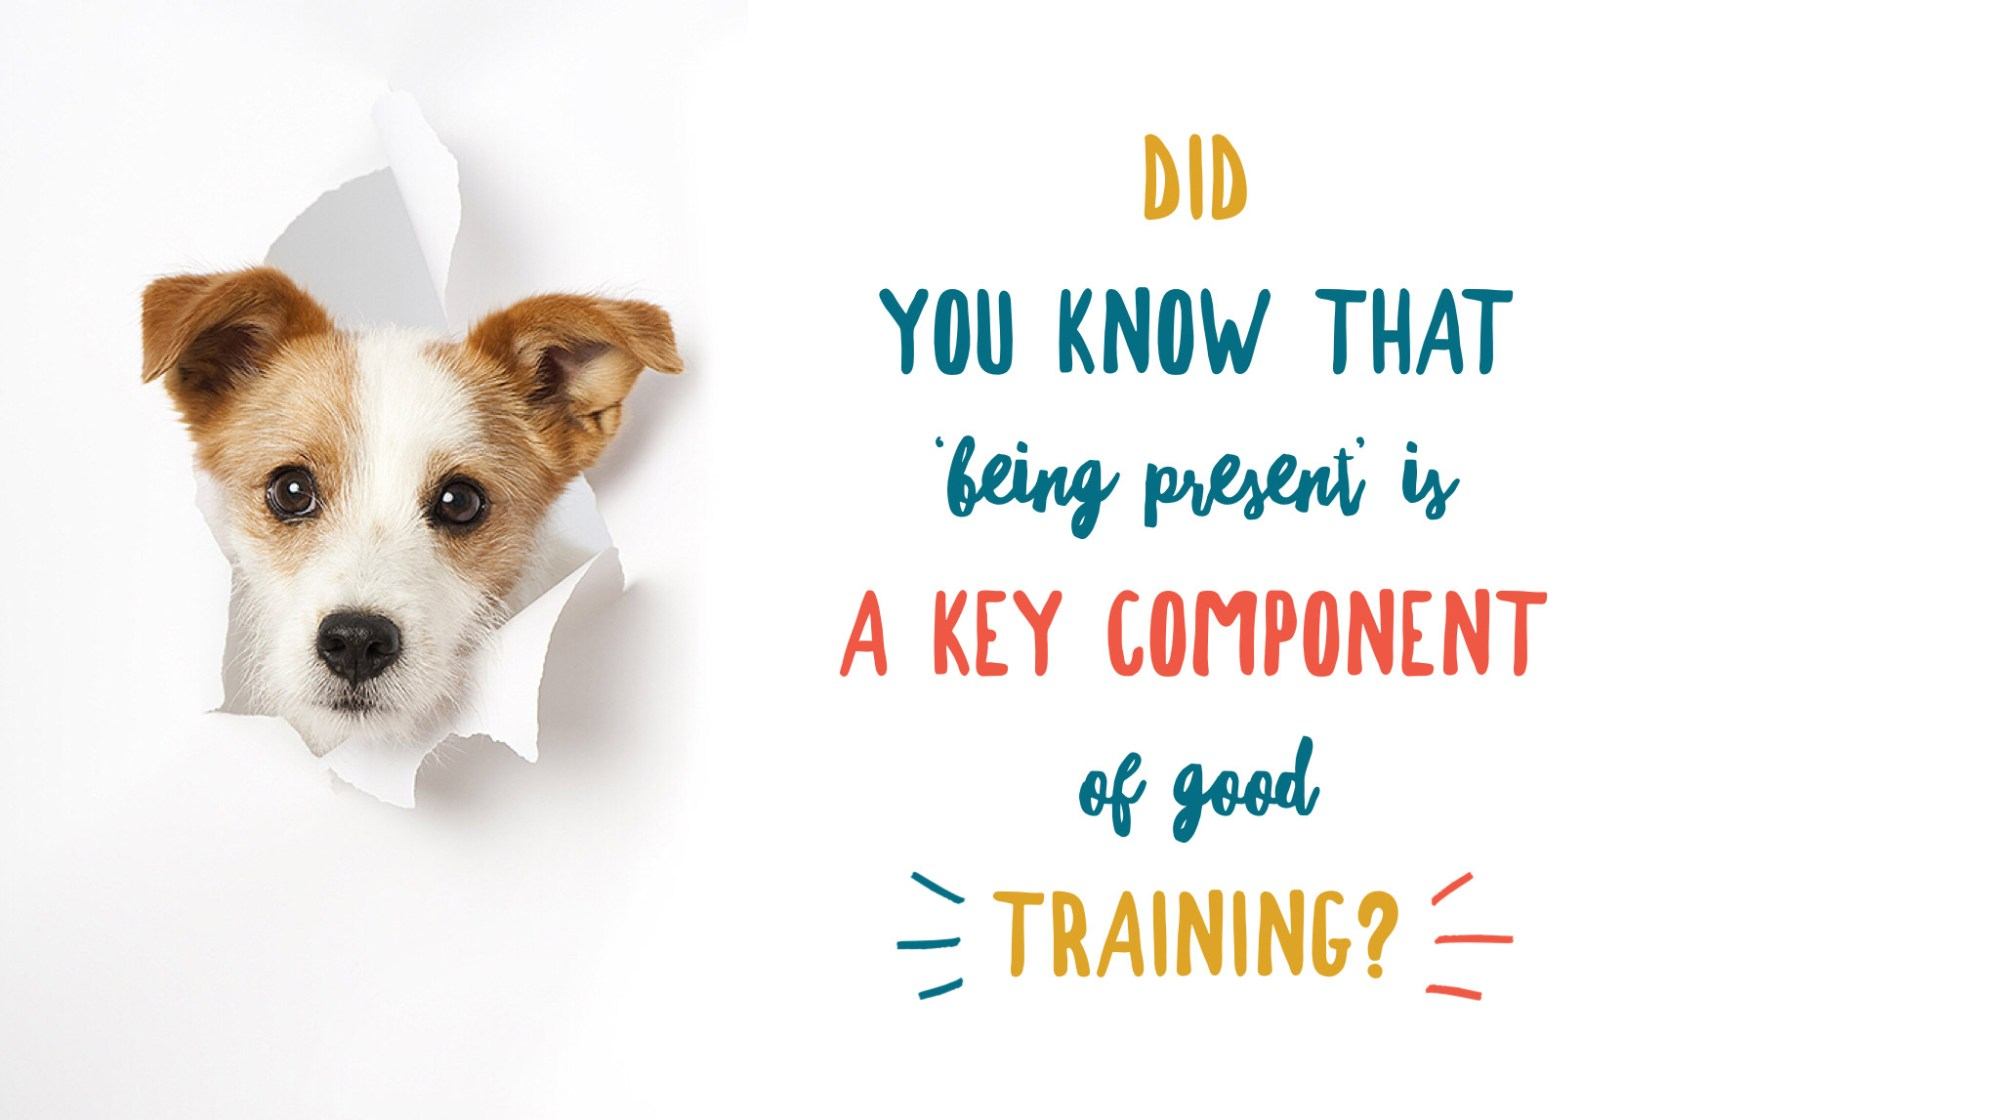 A young jack russell puppy's head has burst through the white paper on the left of the page. He is facing the camera. On the left is text which reads: Did you know that being present is a key component of good training?